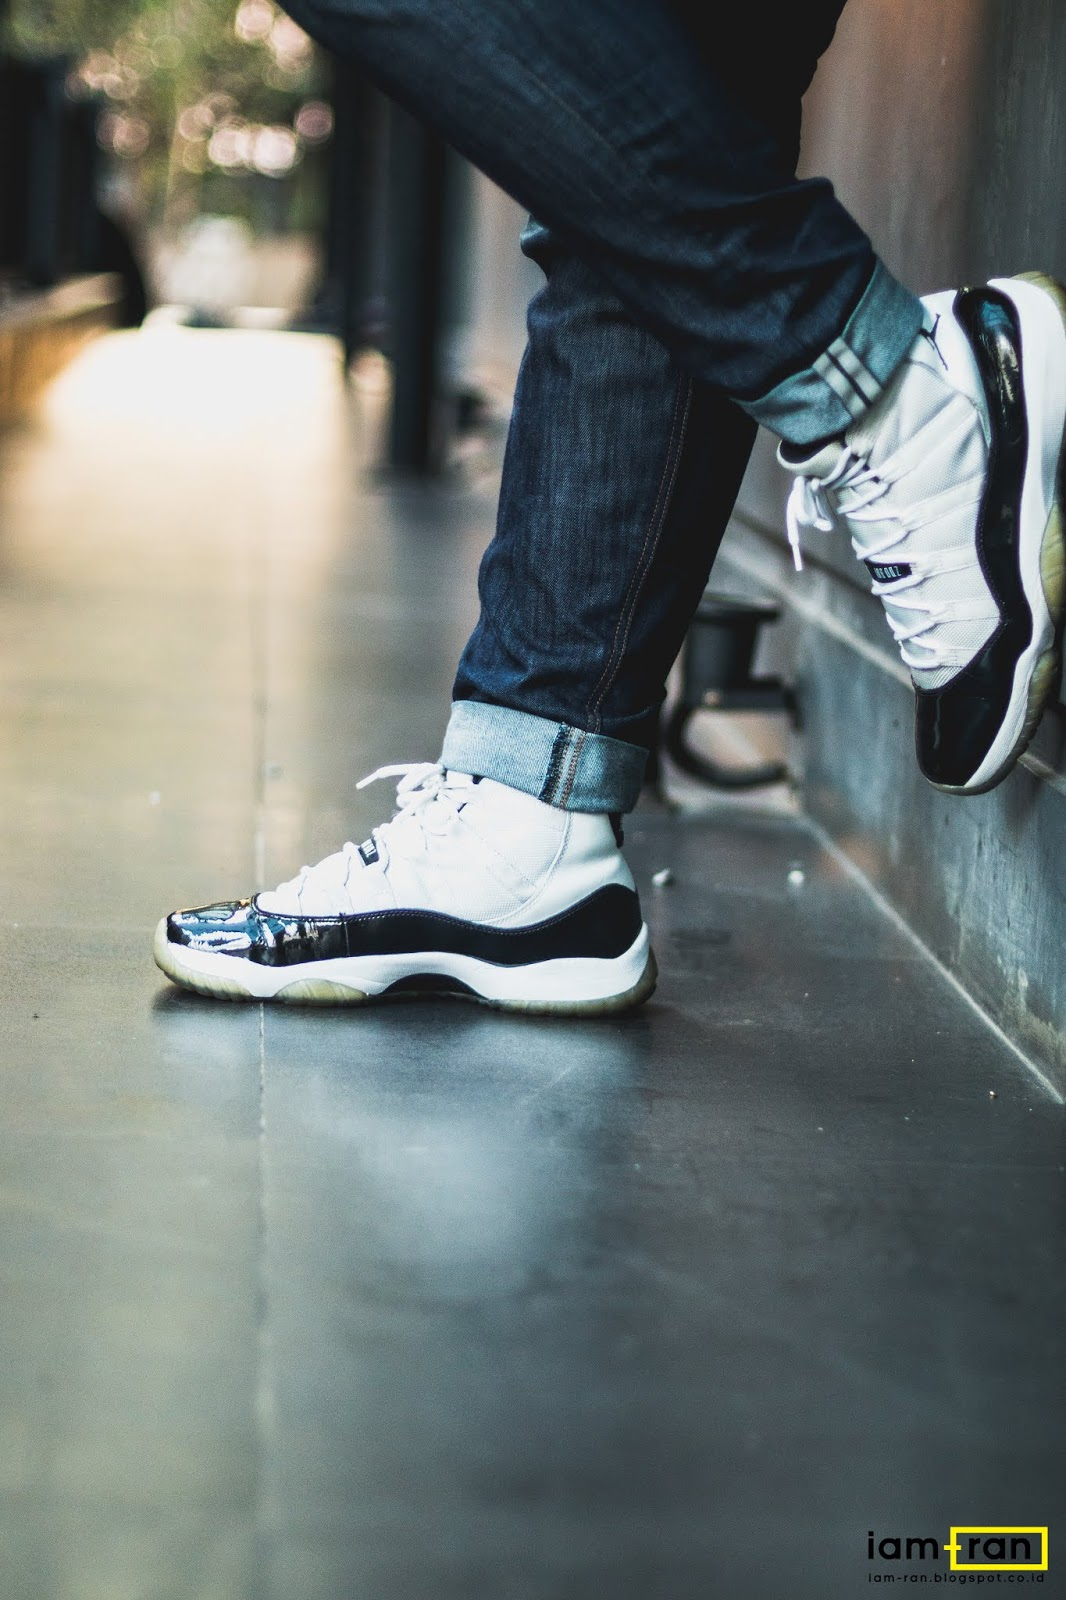 best authentic 904ba a65ab IAM-RAN: ON FEET : Ryan - Nike Air Jordan 11 Concord